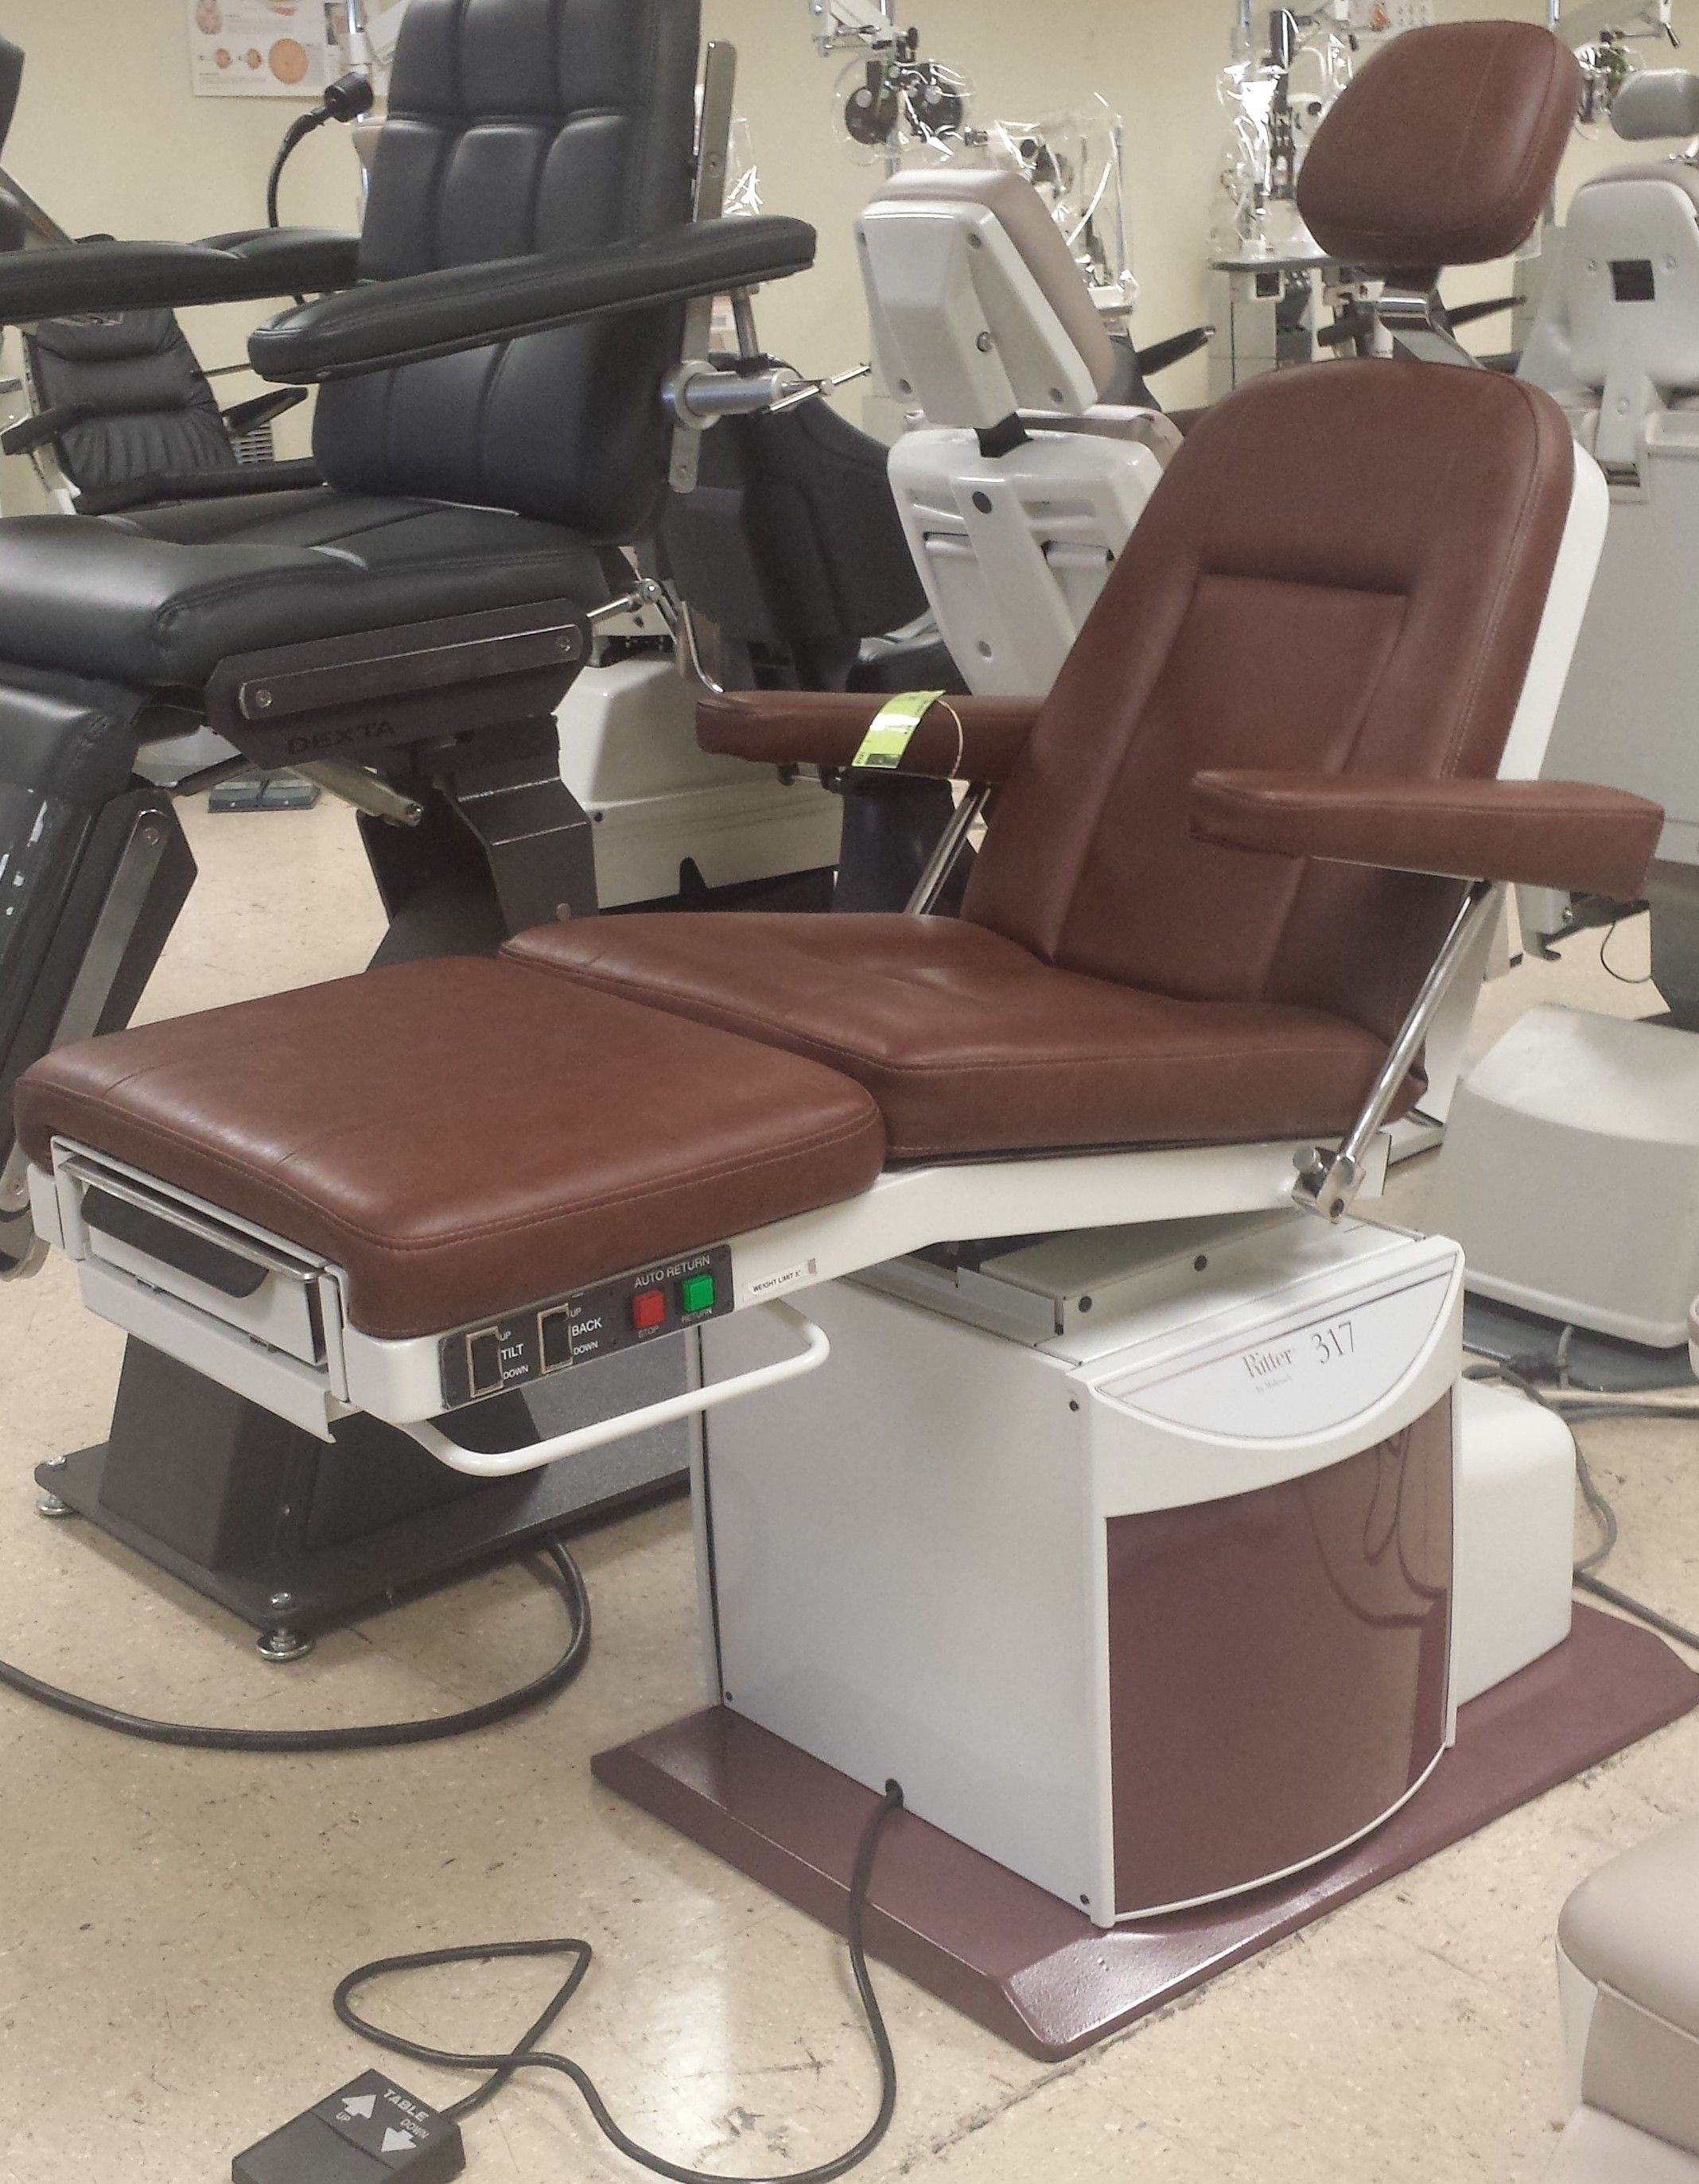 Podiatry Examination Chairs newMidmark Podiatry Chairs for saleUMF podiatry chairs for sale & Podiatry Examination Chairs newMidmark Podiatry Chairs for saleUMF ...